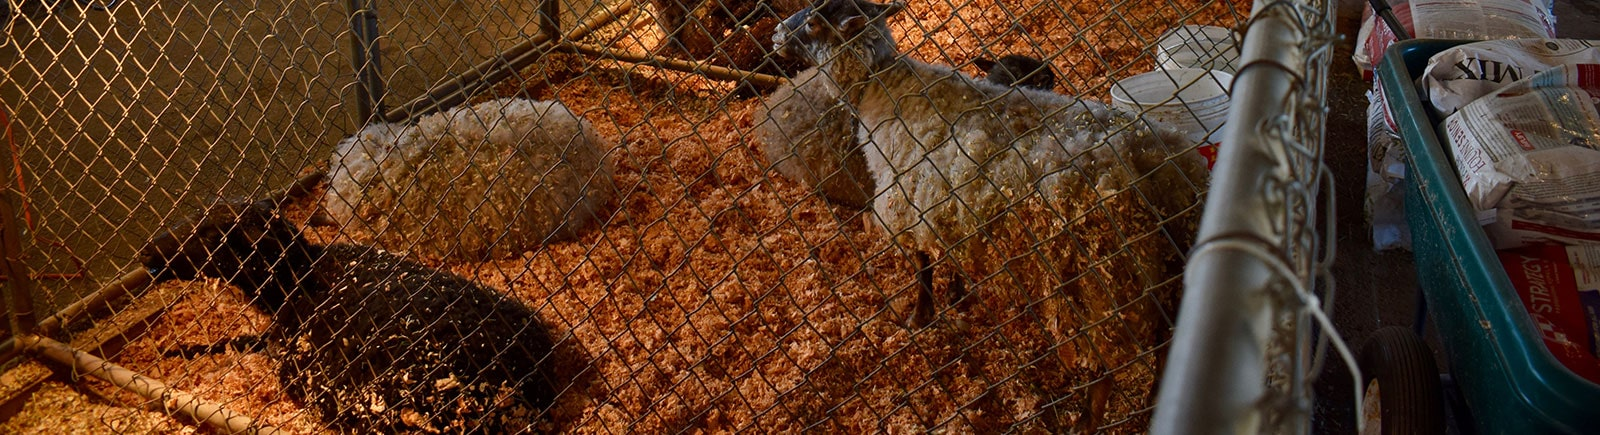 sheep in a gated area